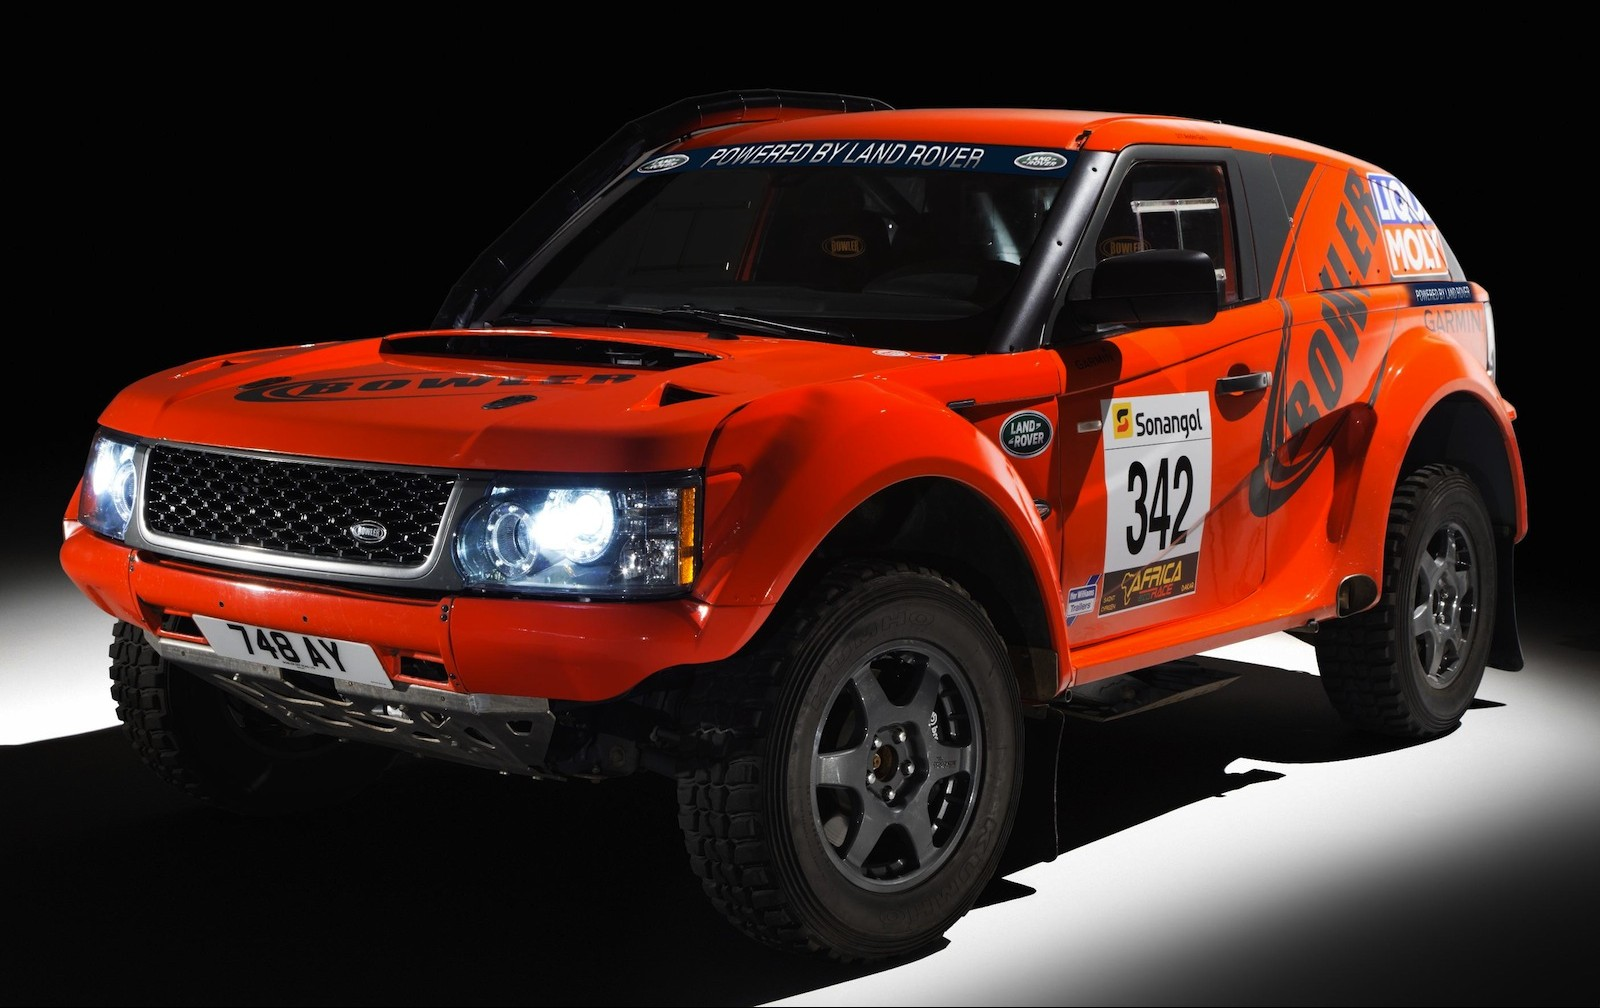 Land rover bowler photo - 2